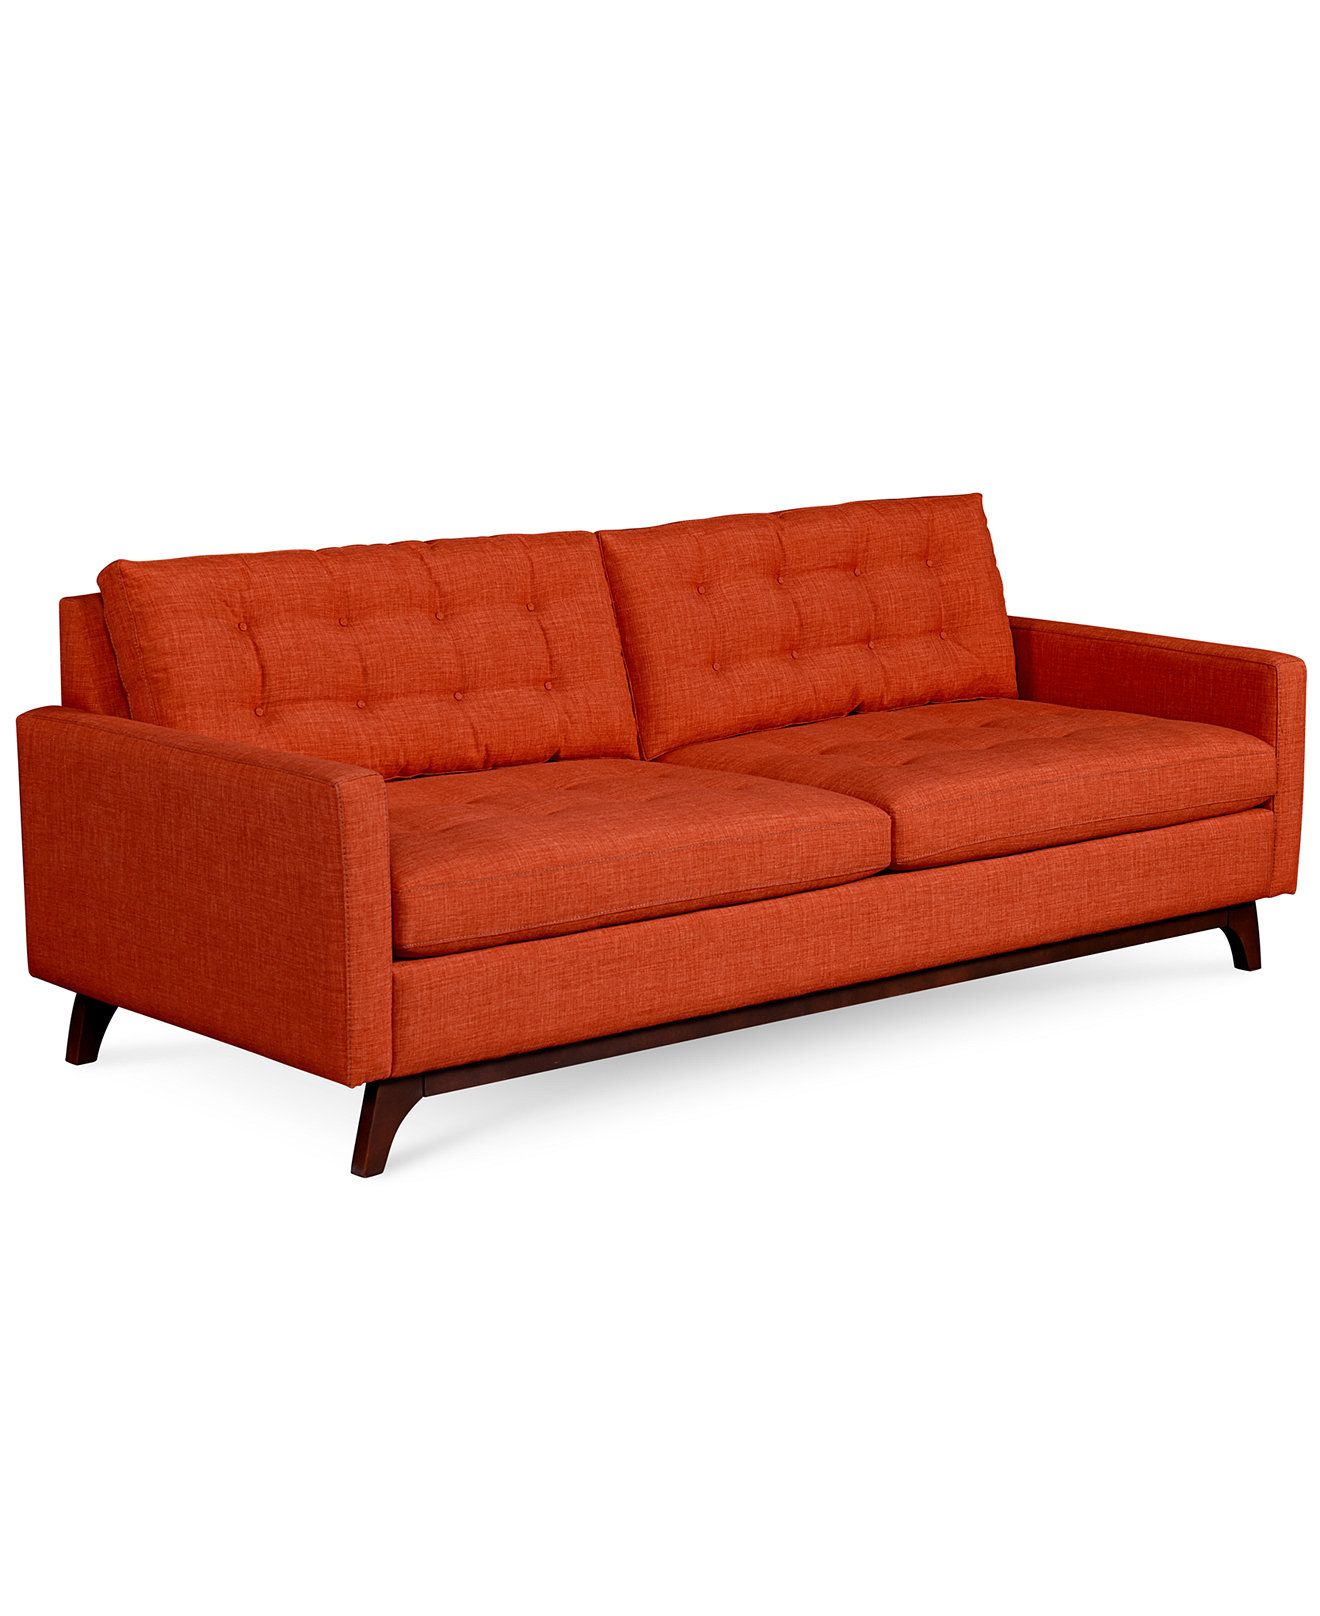 Karlie Fabric Sofa Couches & Sofas Furniture Macy s $629 til